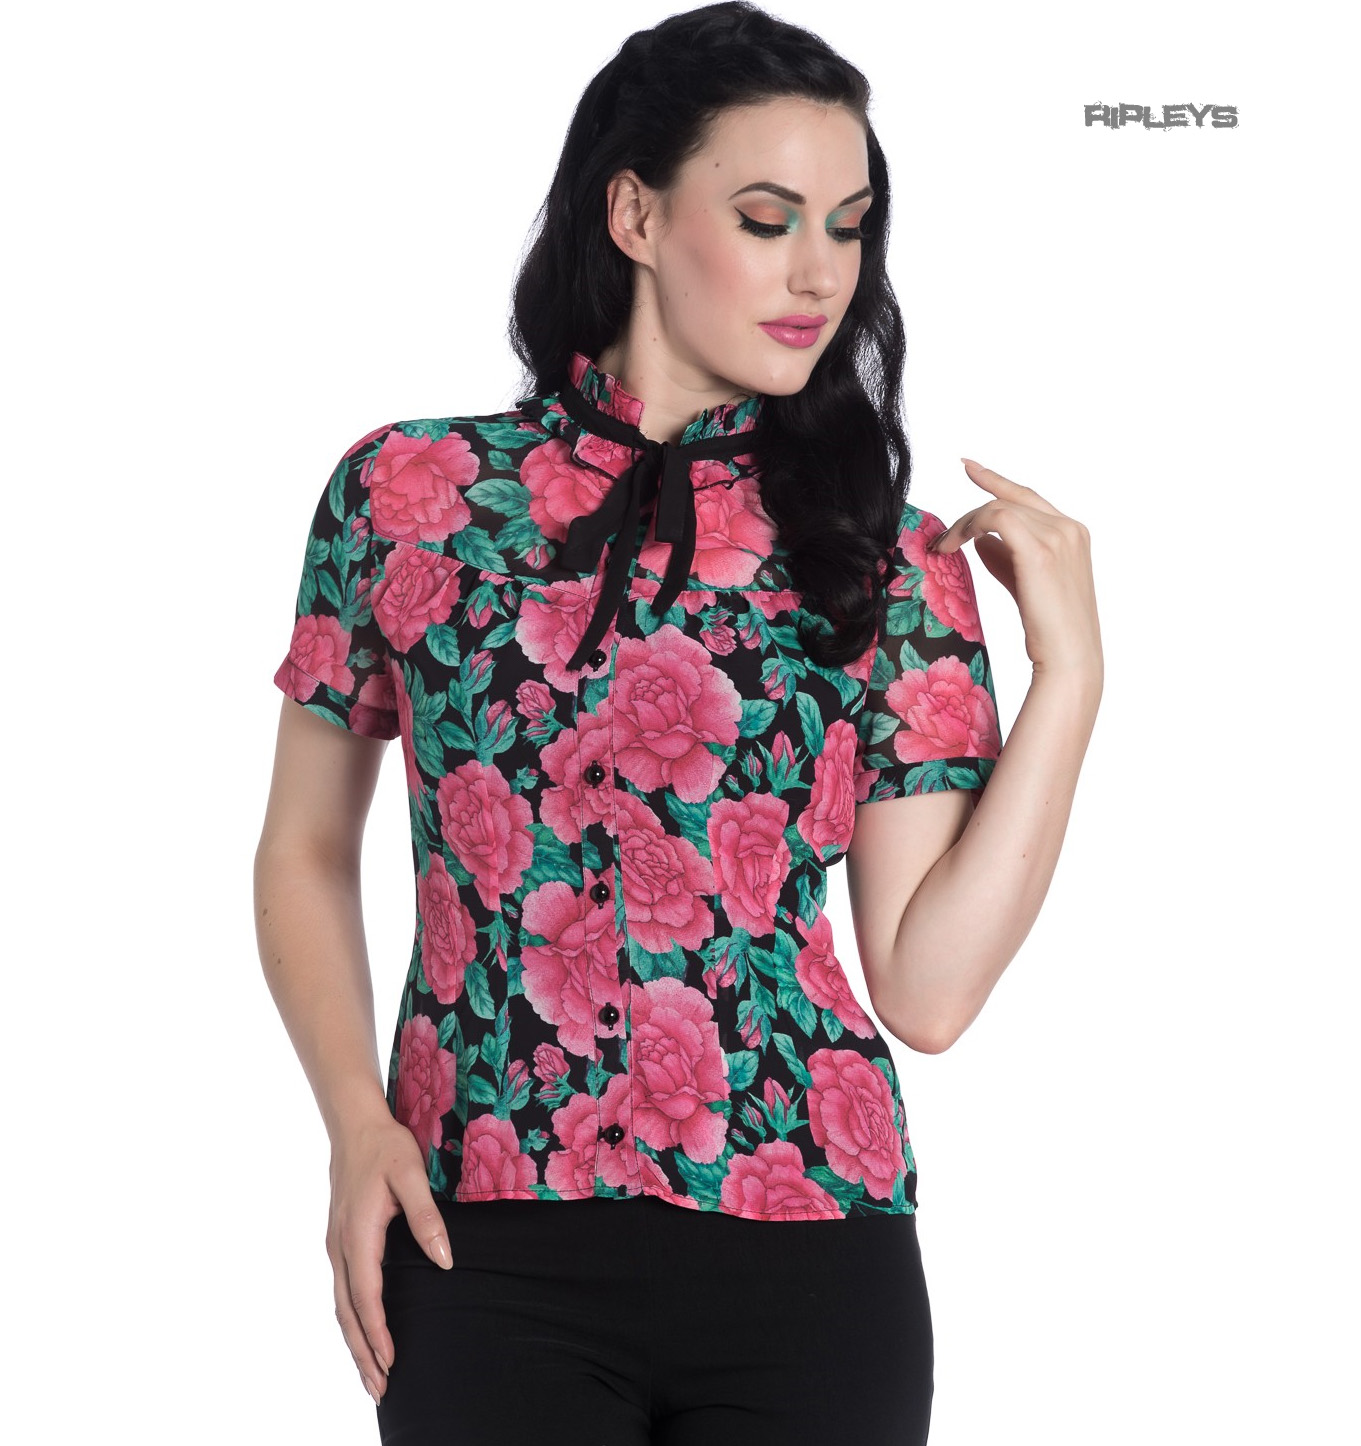 Hell Bunny Shirt Top Flowers Roses EDEN ROSE Black Pink Blouse All Sizes